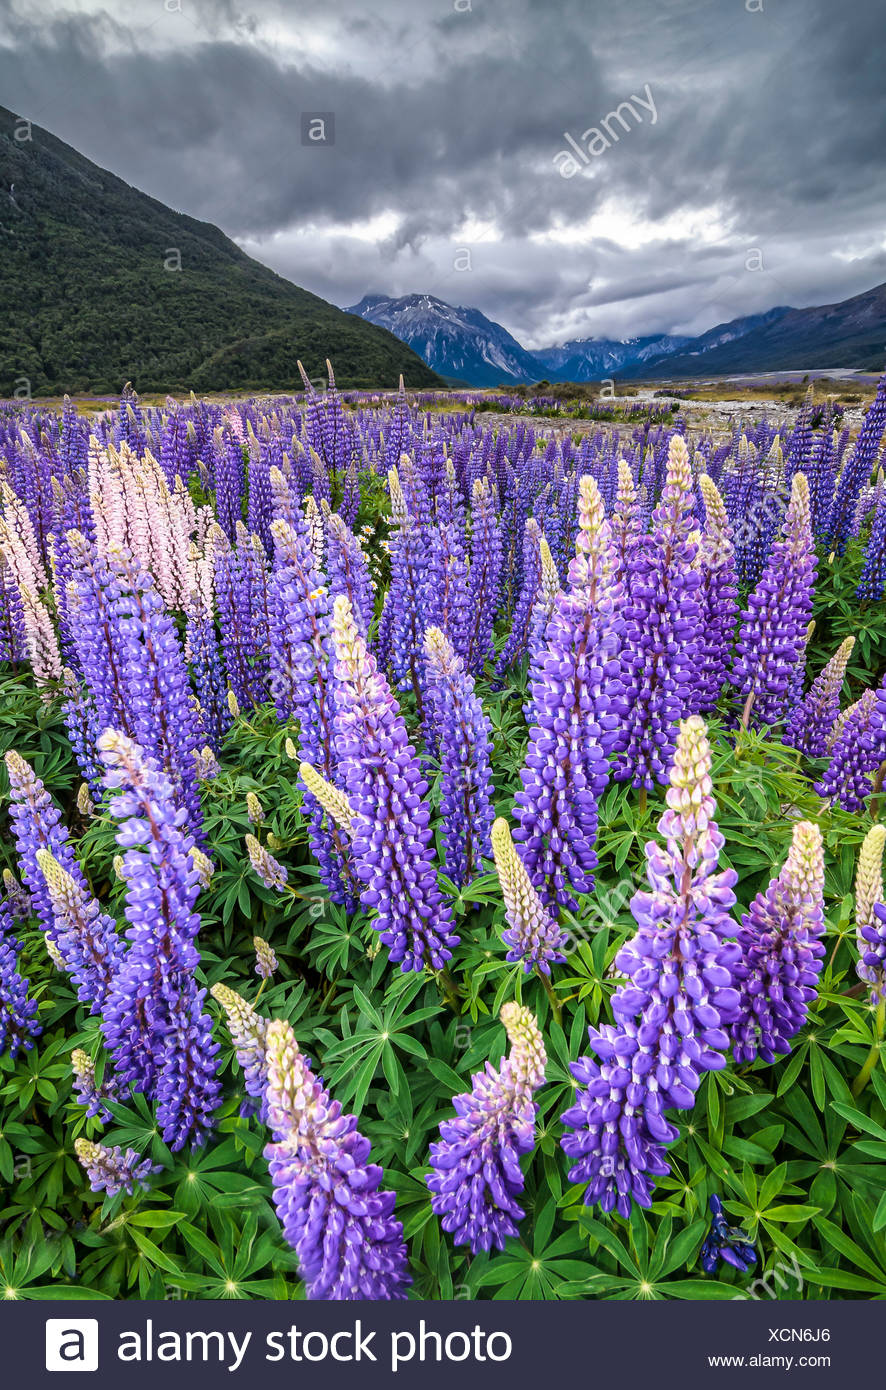 Purple lupins with pink tips (Lupinus) at Arthur's Pass National Park, vast valley at back, South Island, New Zealand, Oceania - Stock Image